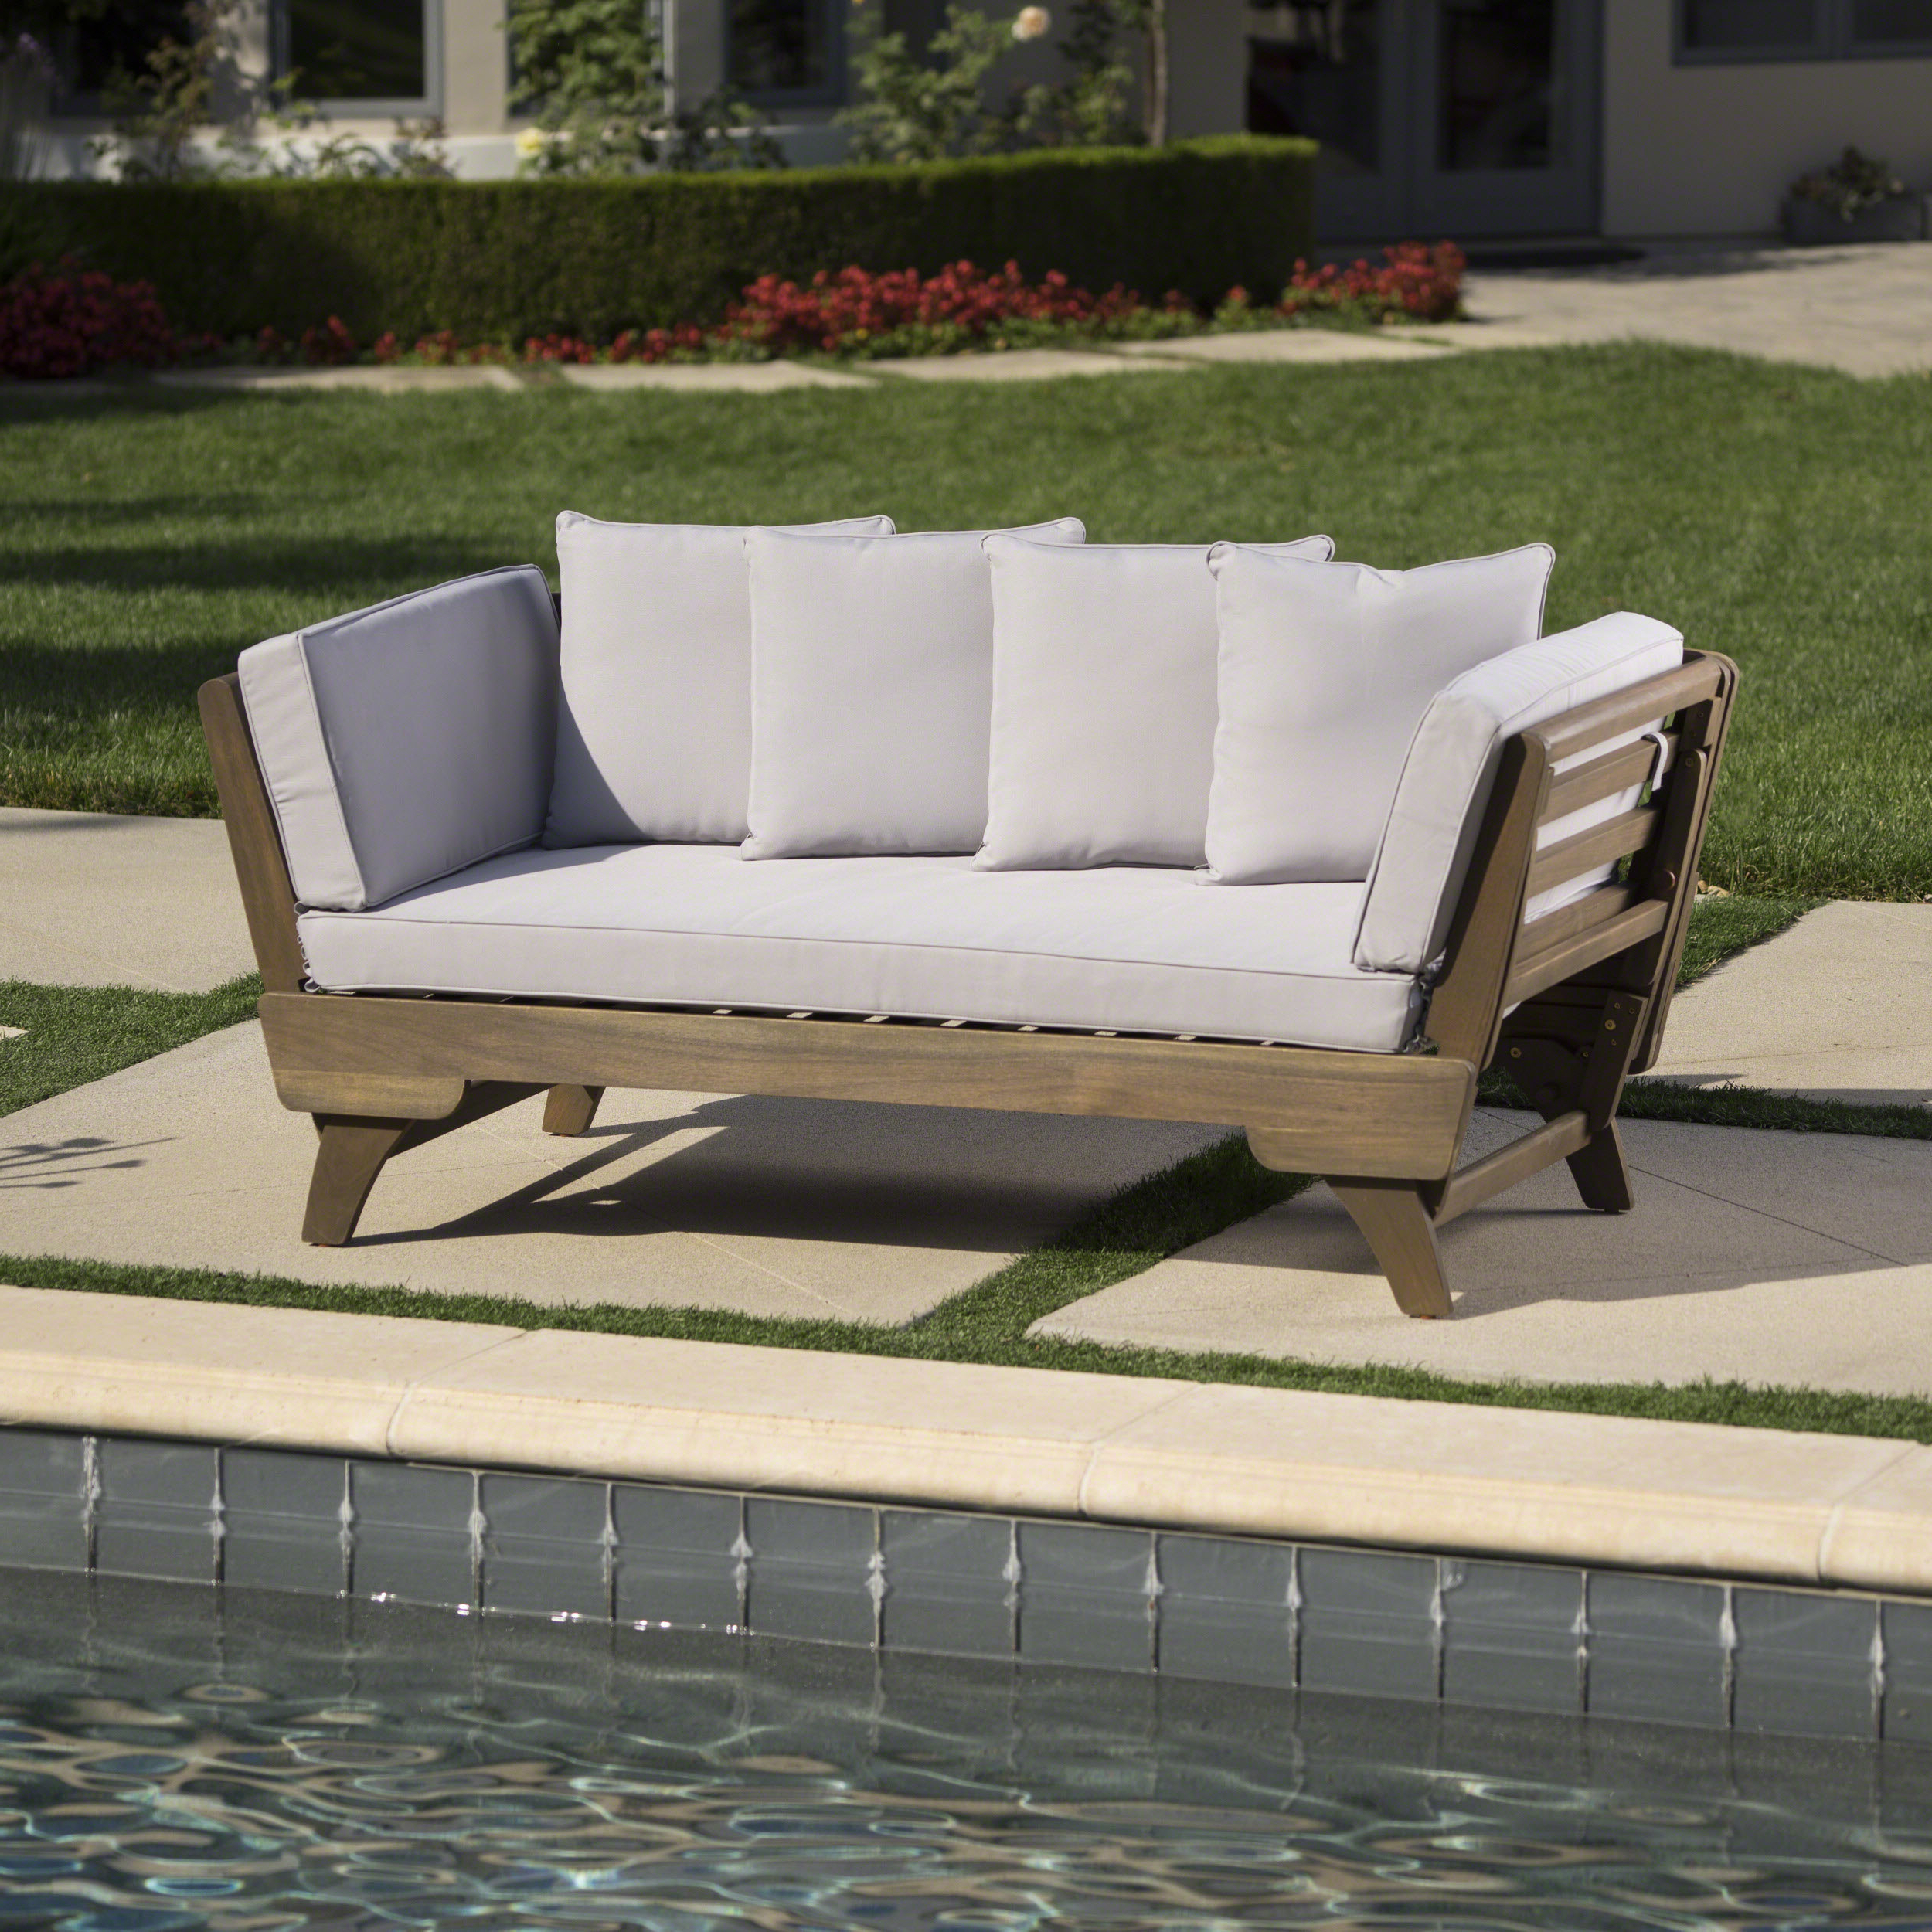 Falmouth Patio Daybeds With Cushions Within Favorite Ellanti Teak Patio Daybed With Cushions (View 9 of 20)